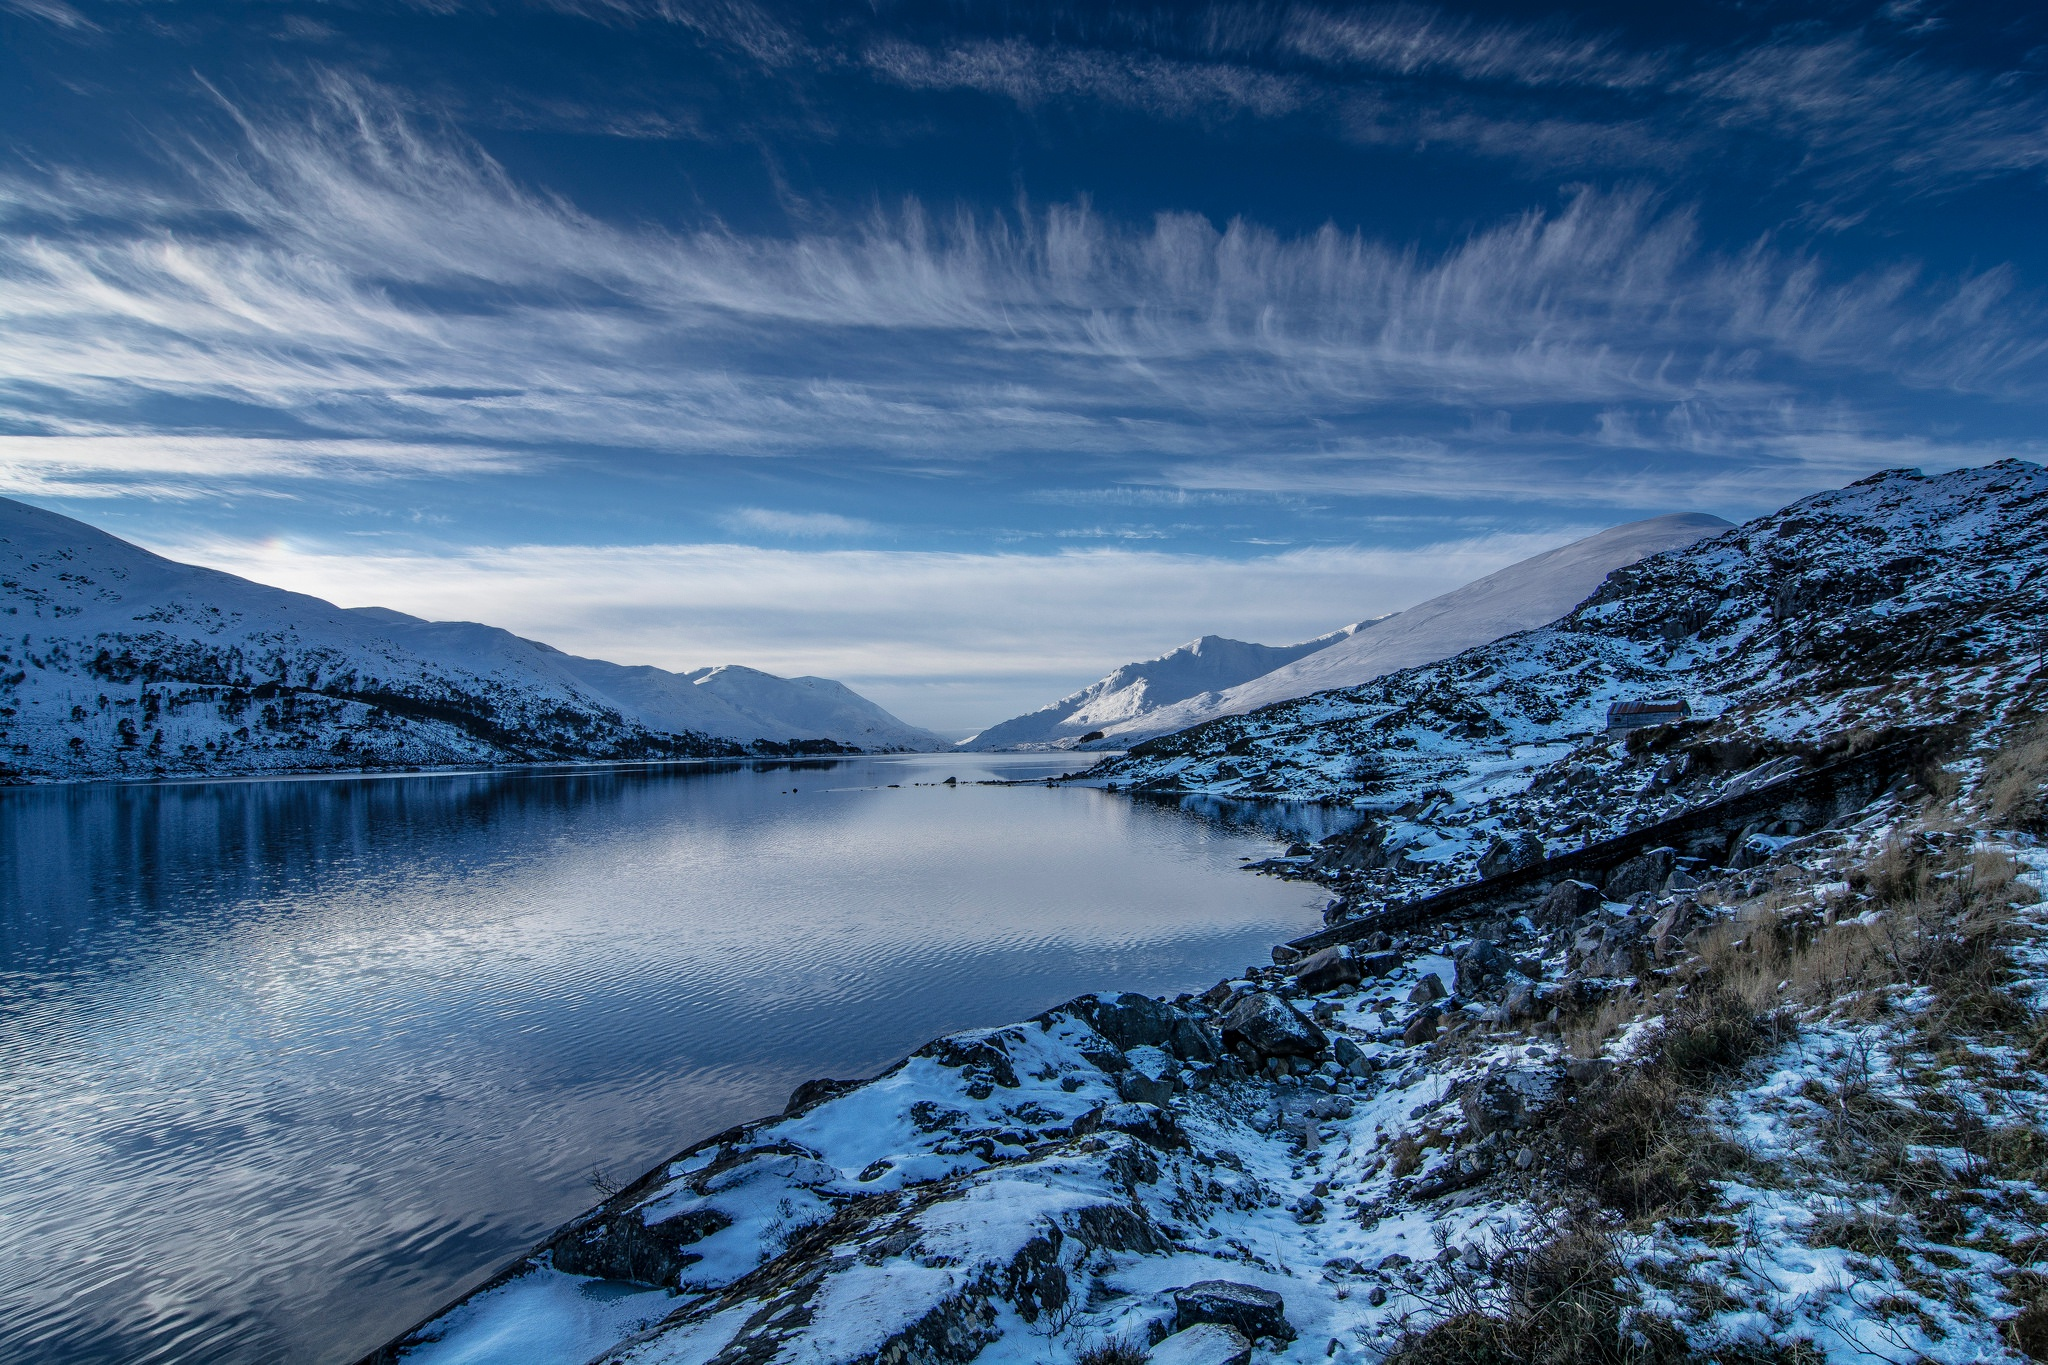 4k Nature Wallpaper Winter France: Lake Nature Winter, HD Nature, 4k Wallpapers, Images